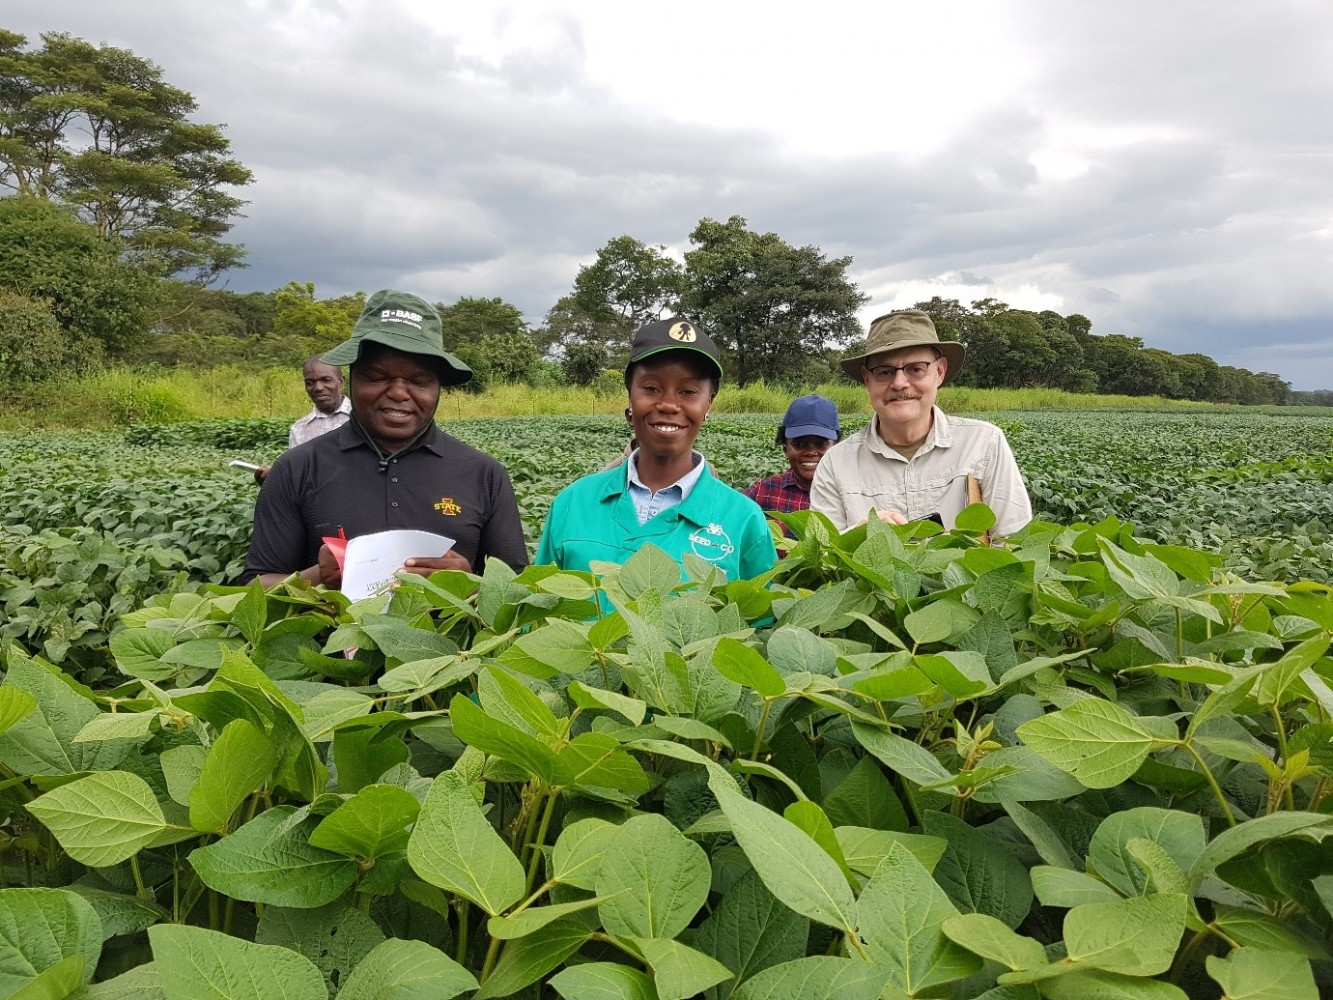 Glen Hartman (right) pictured with Pan-African Soybean Variety Trial collaborators with the International Institute of Tropical Agriculture (IITA) at a field site in Zambia in March 2019.